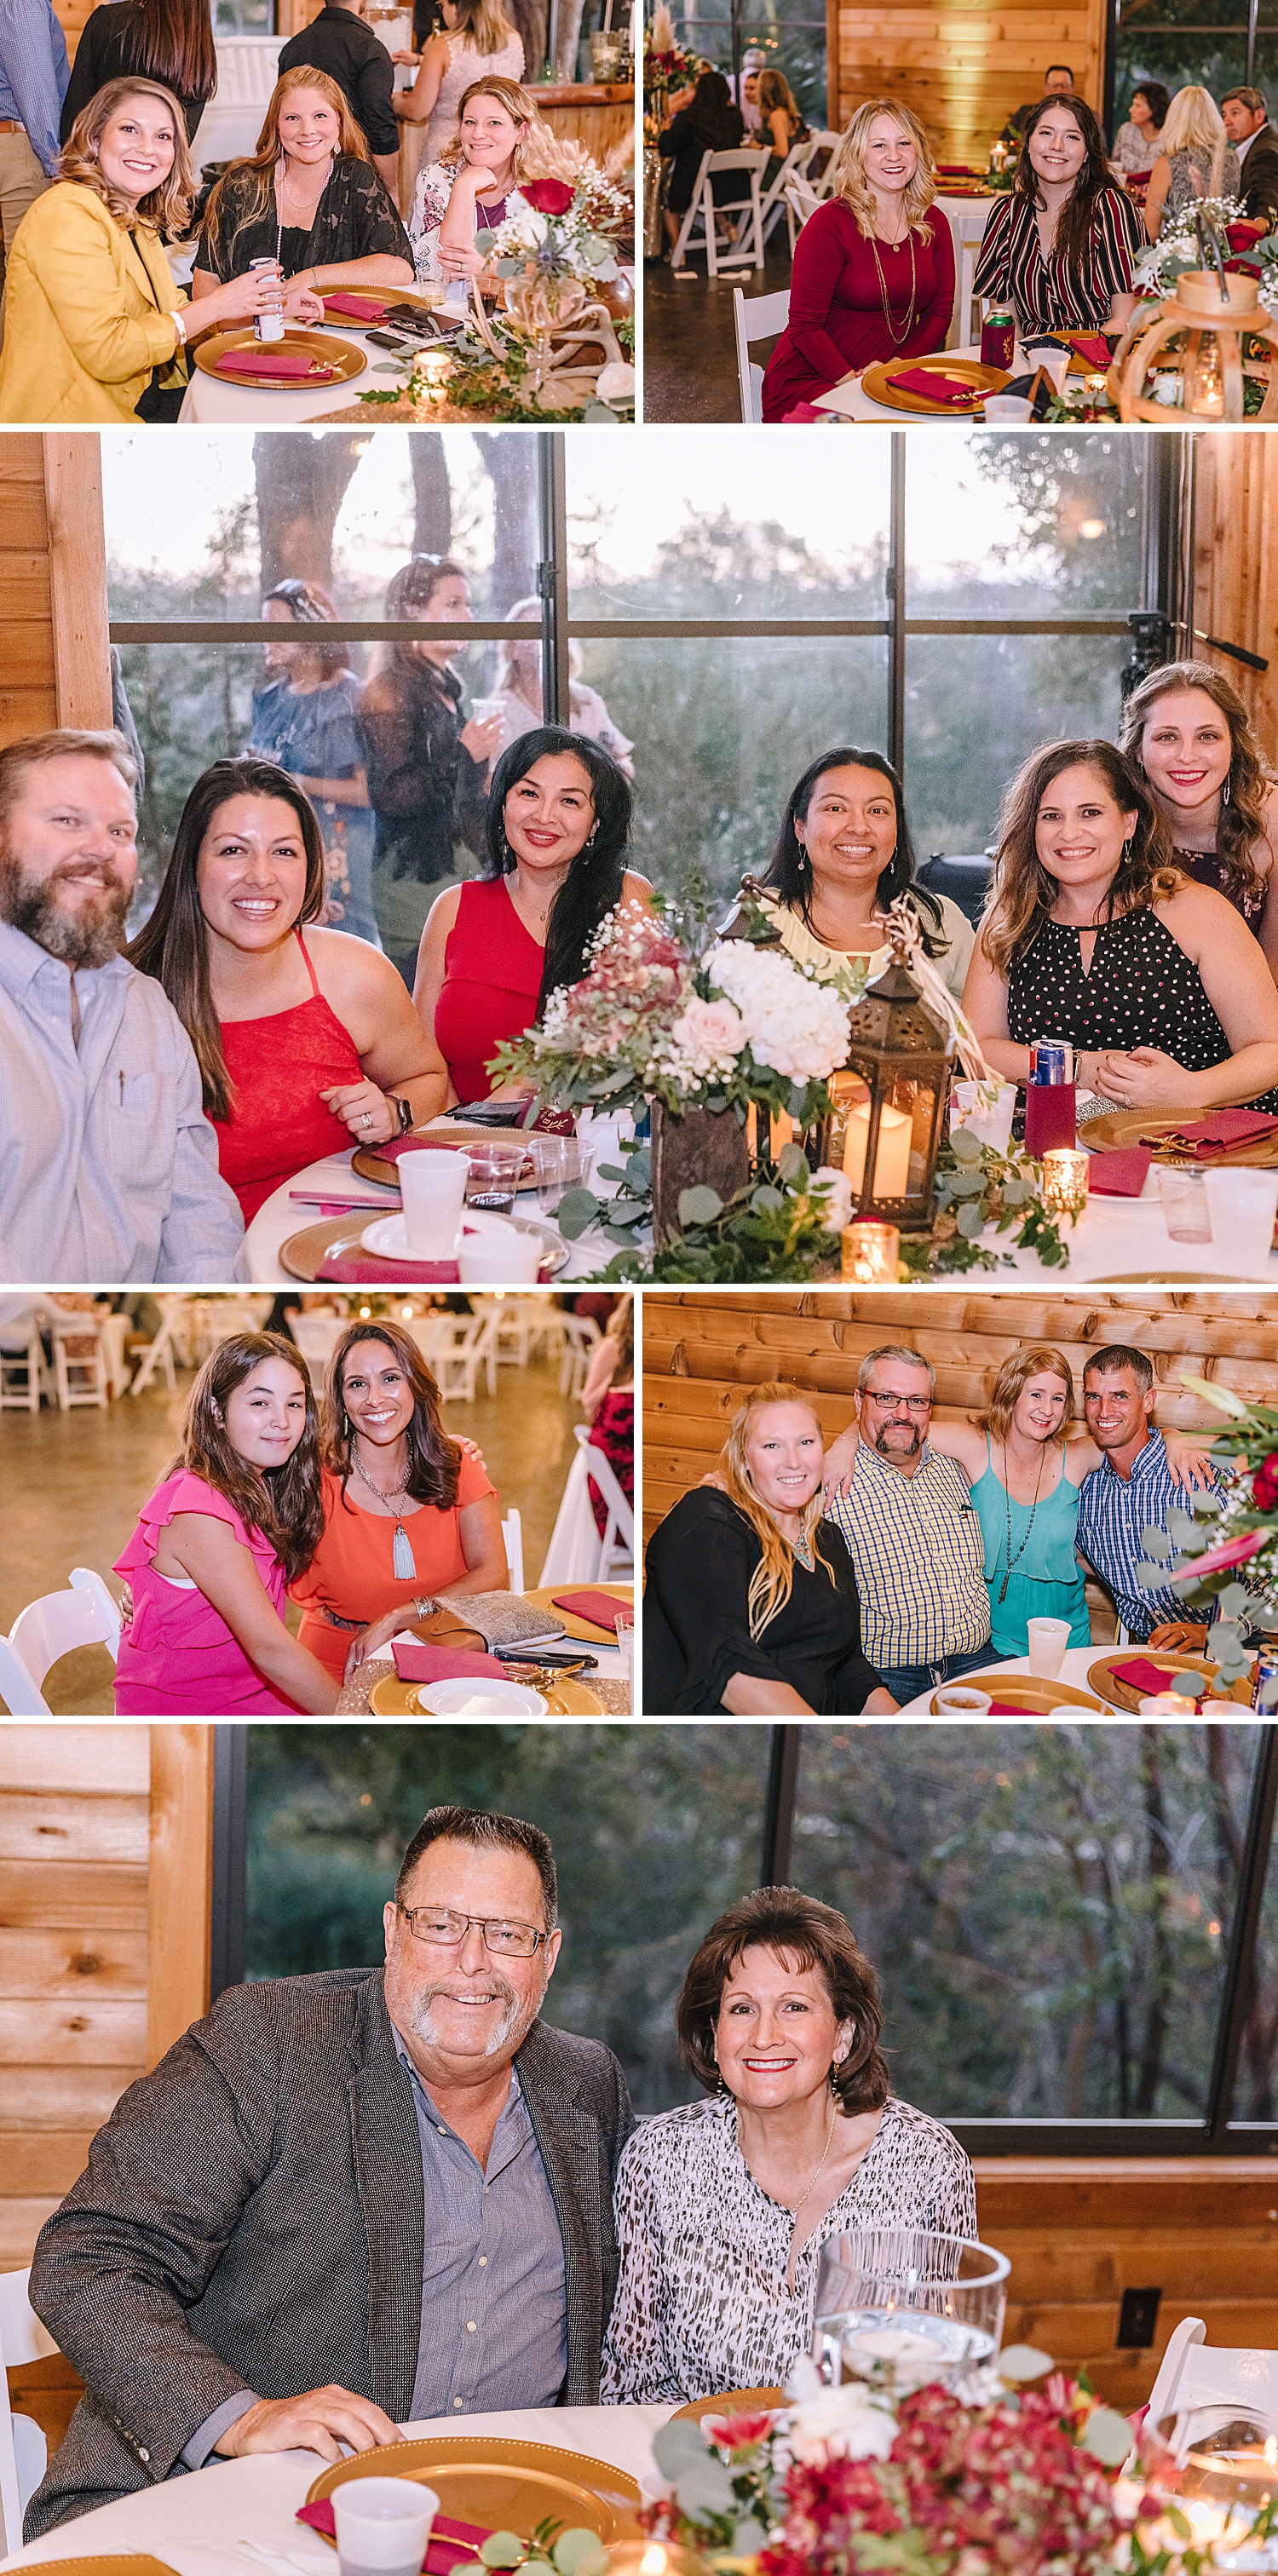 Geronimo-Oaks-Wedding-Venue-Seguin-Texas-Elegant-Navy-Burgundy-Wedding-Carly-Barton-Photography_0063.jpg